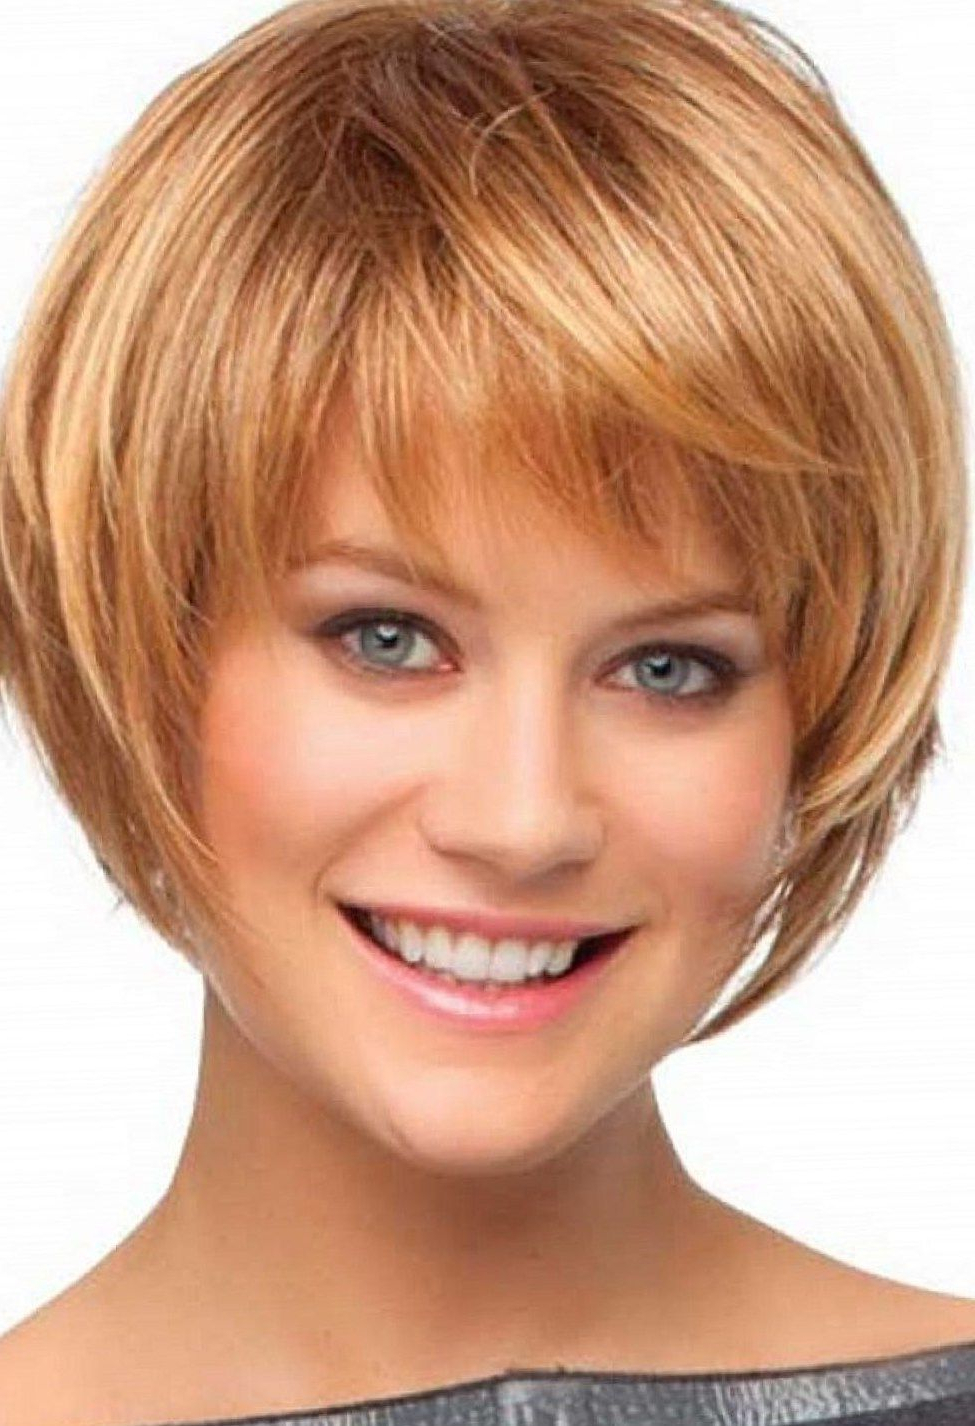 Short Bob Hairstyles With Bangs: 4 Perfect Ideas For You | Talk For Short Haircuts With Bangs And Layers (View 2 of 25)